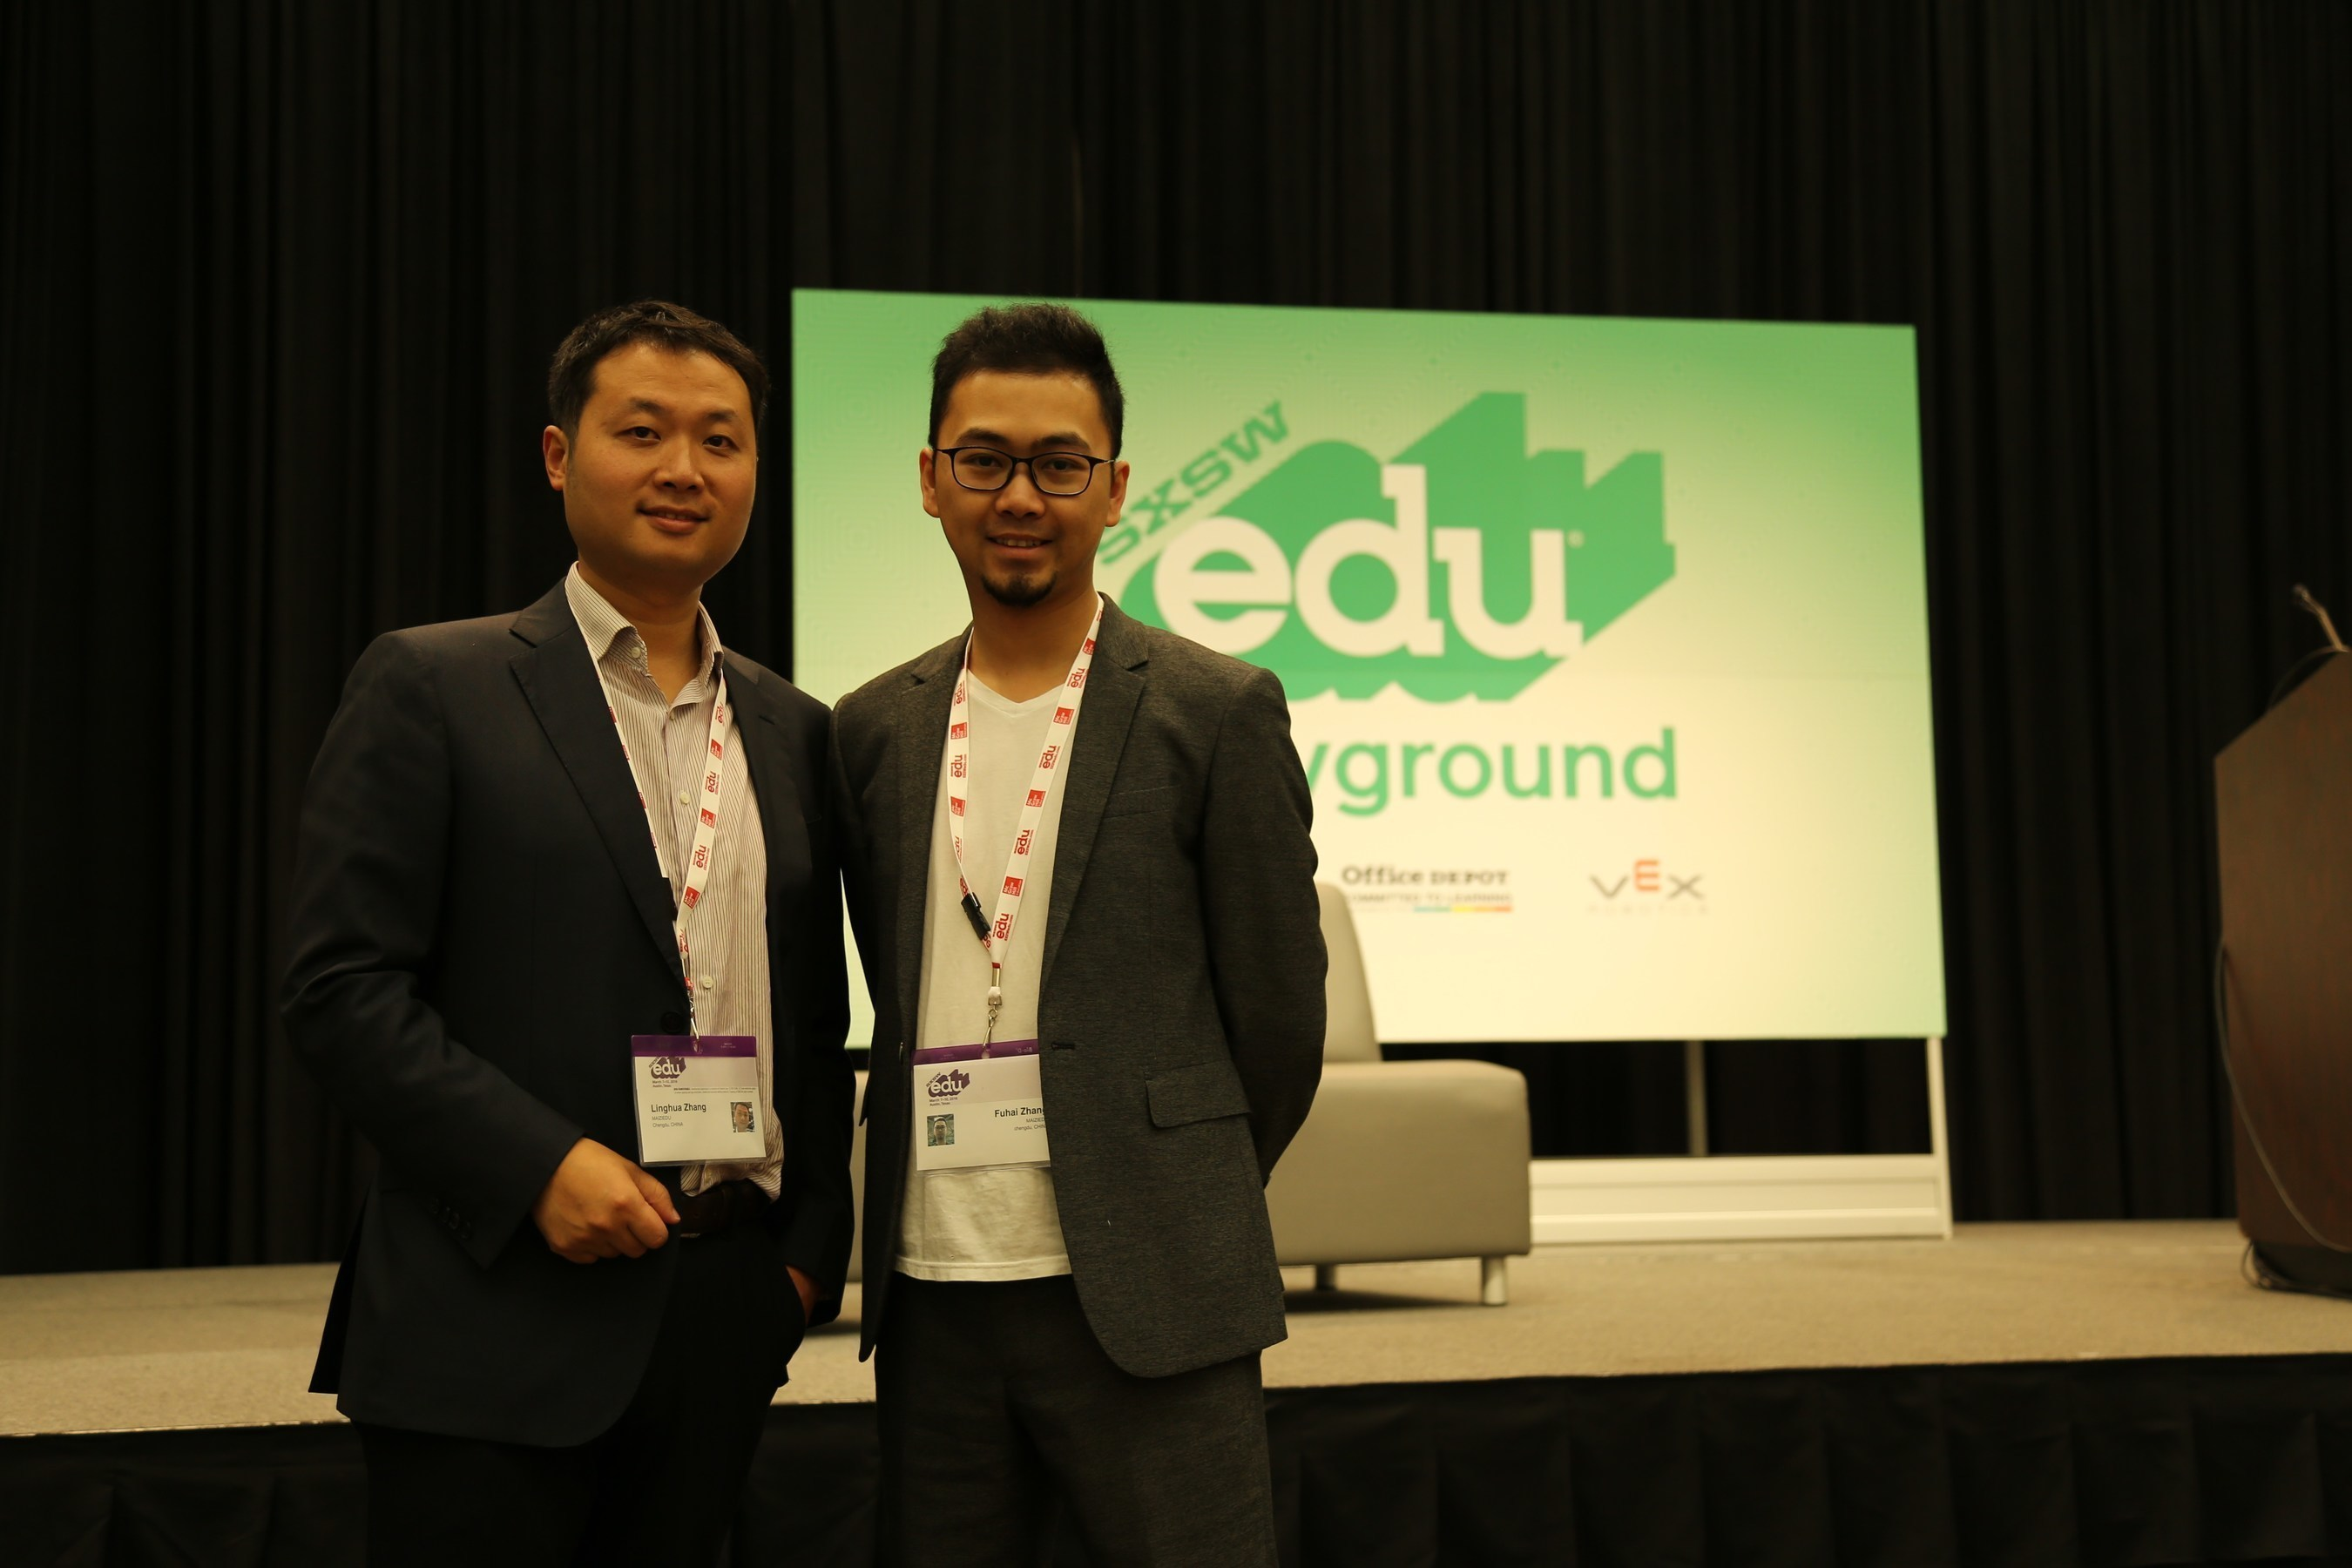 Maizi Education's founder and CEO Zhang Linghua alongside co-founder and COO Zhang Fuhai at SXSWedu